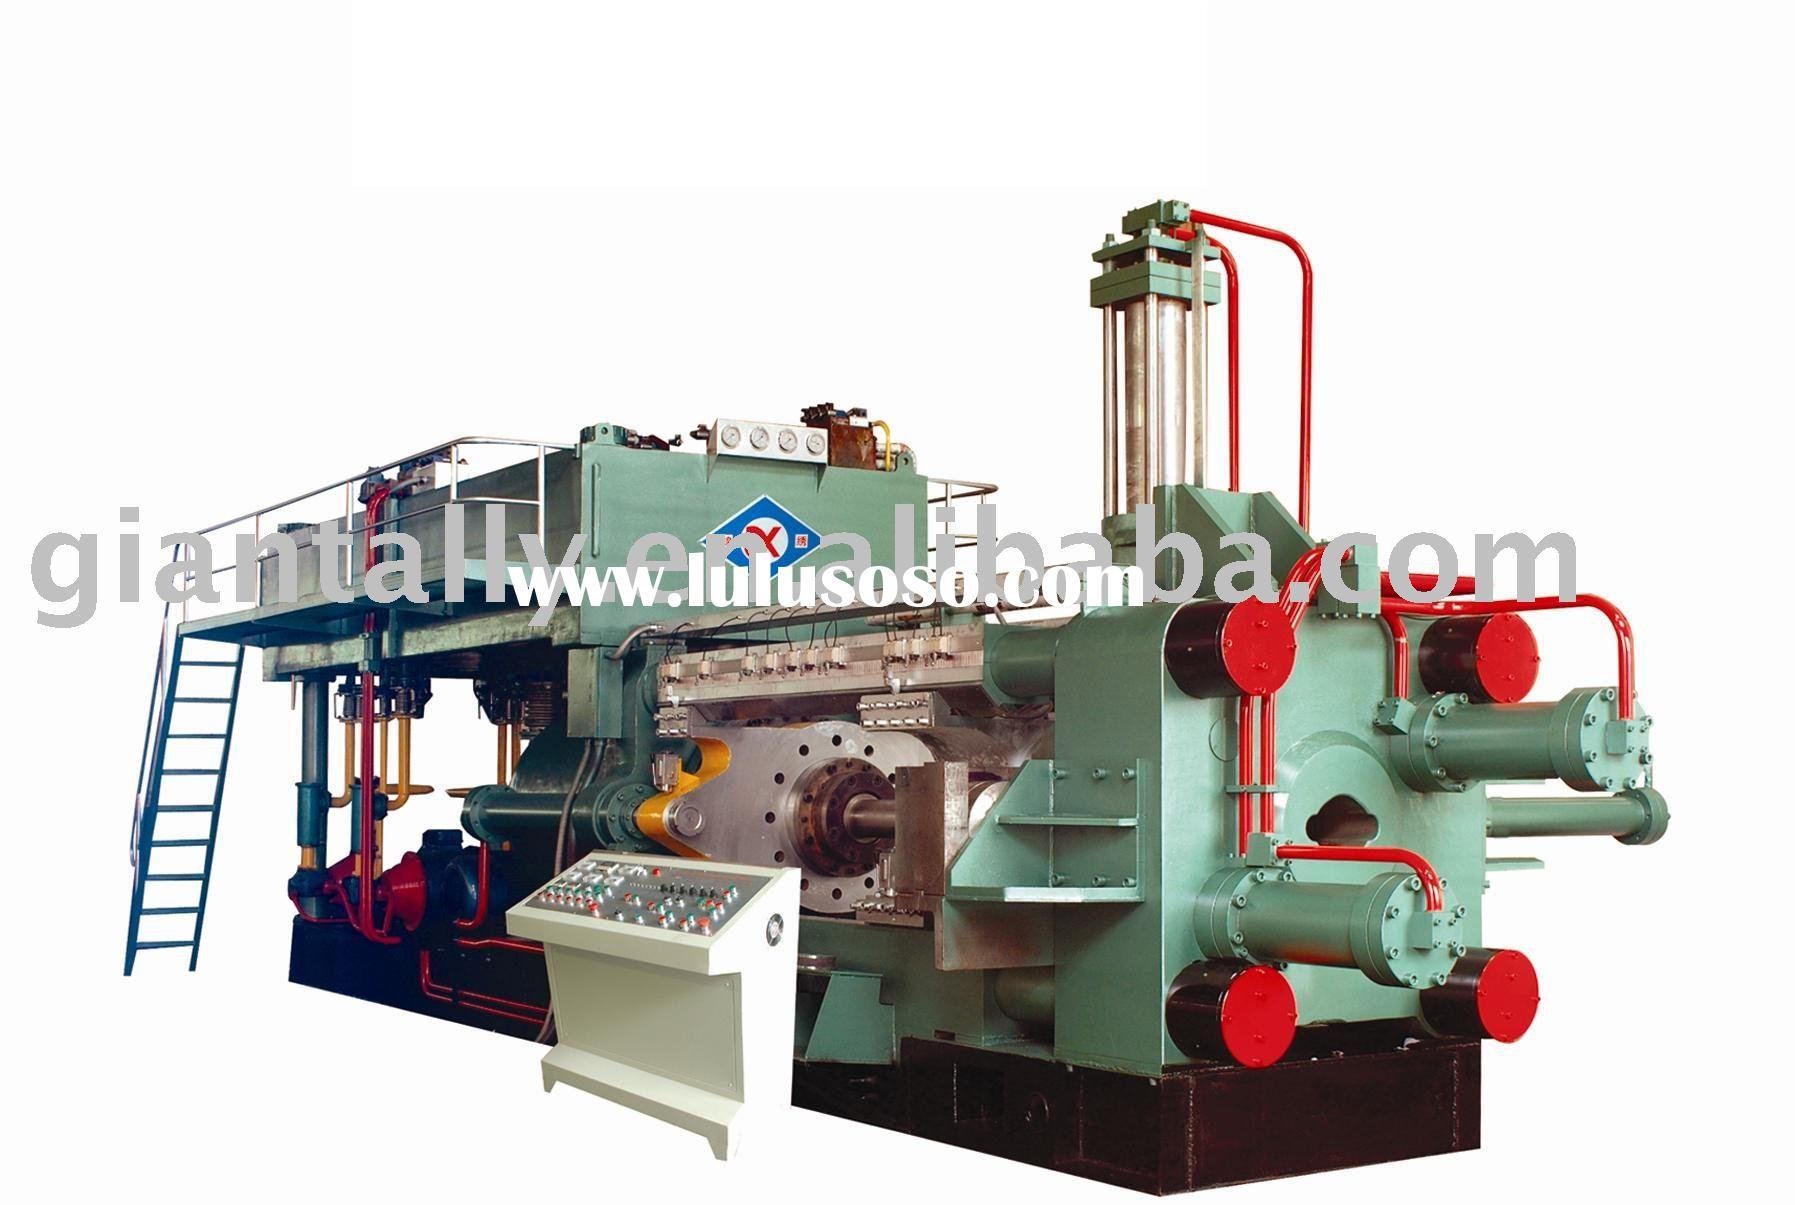 GA-1650T Copper Extrusion Press